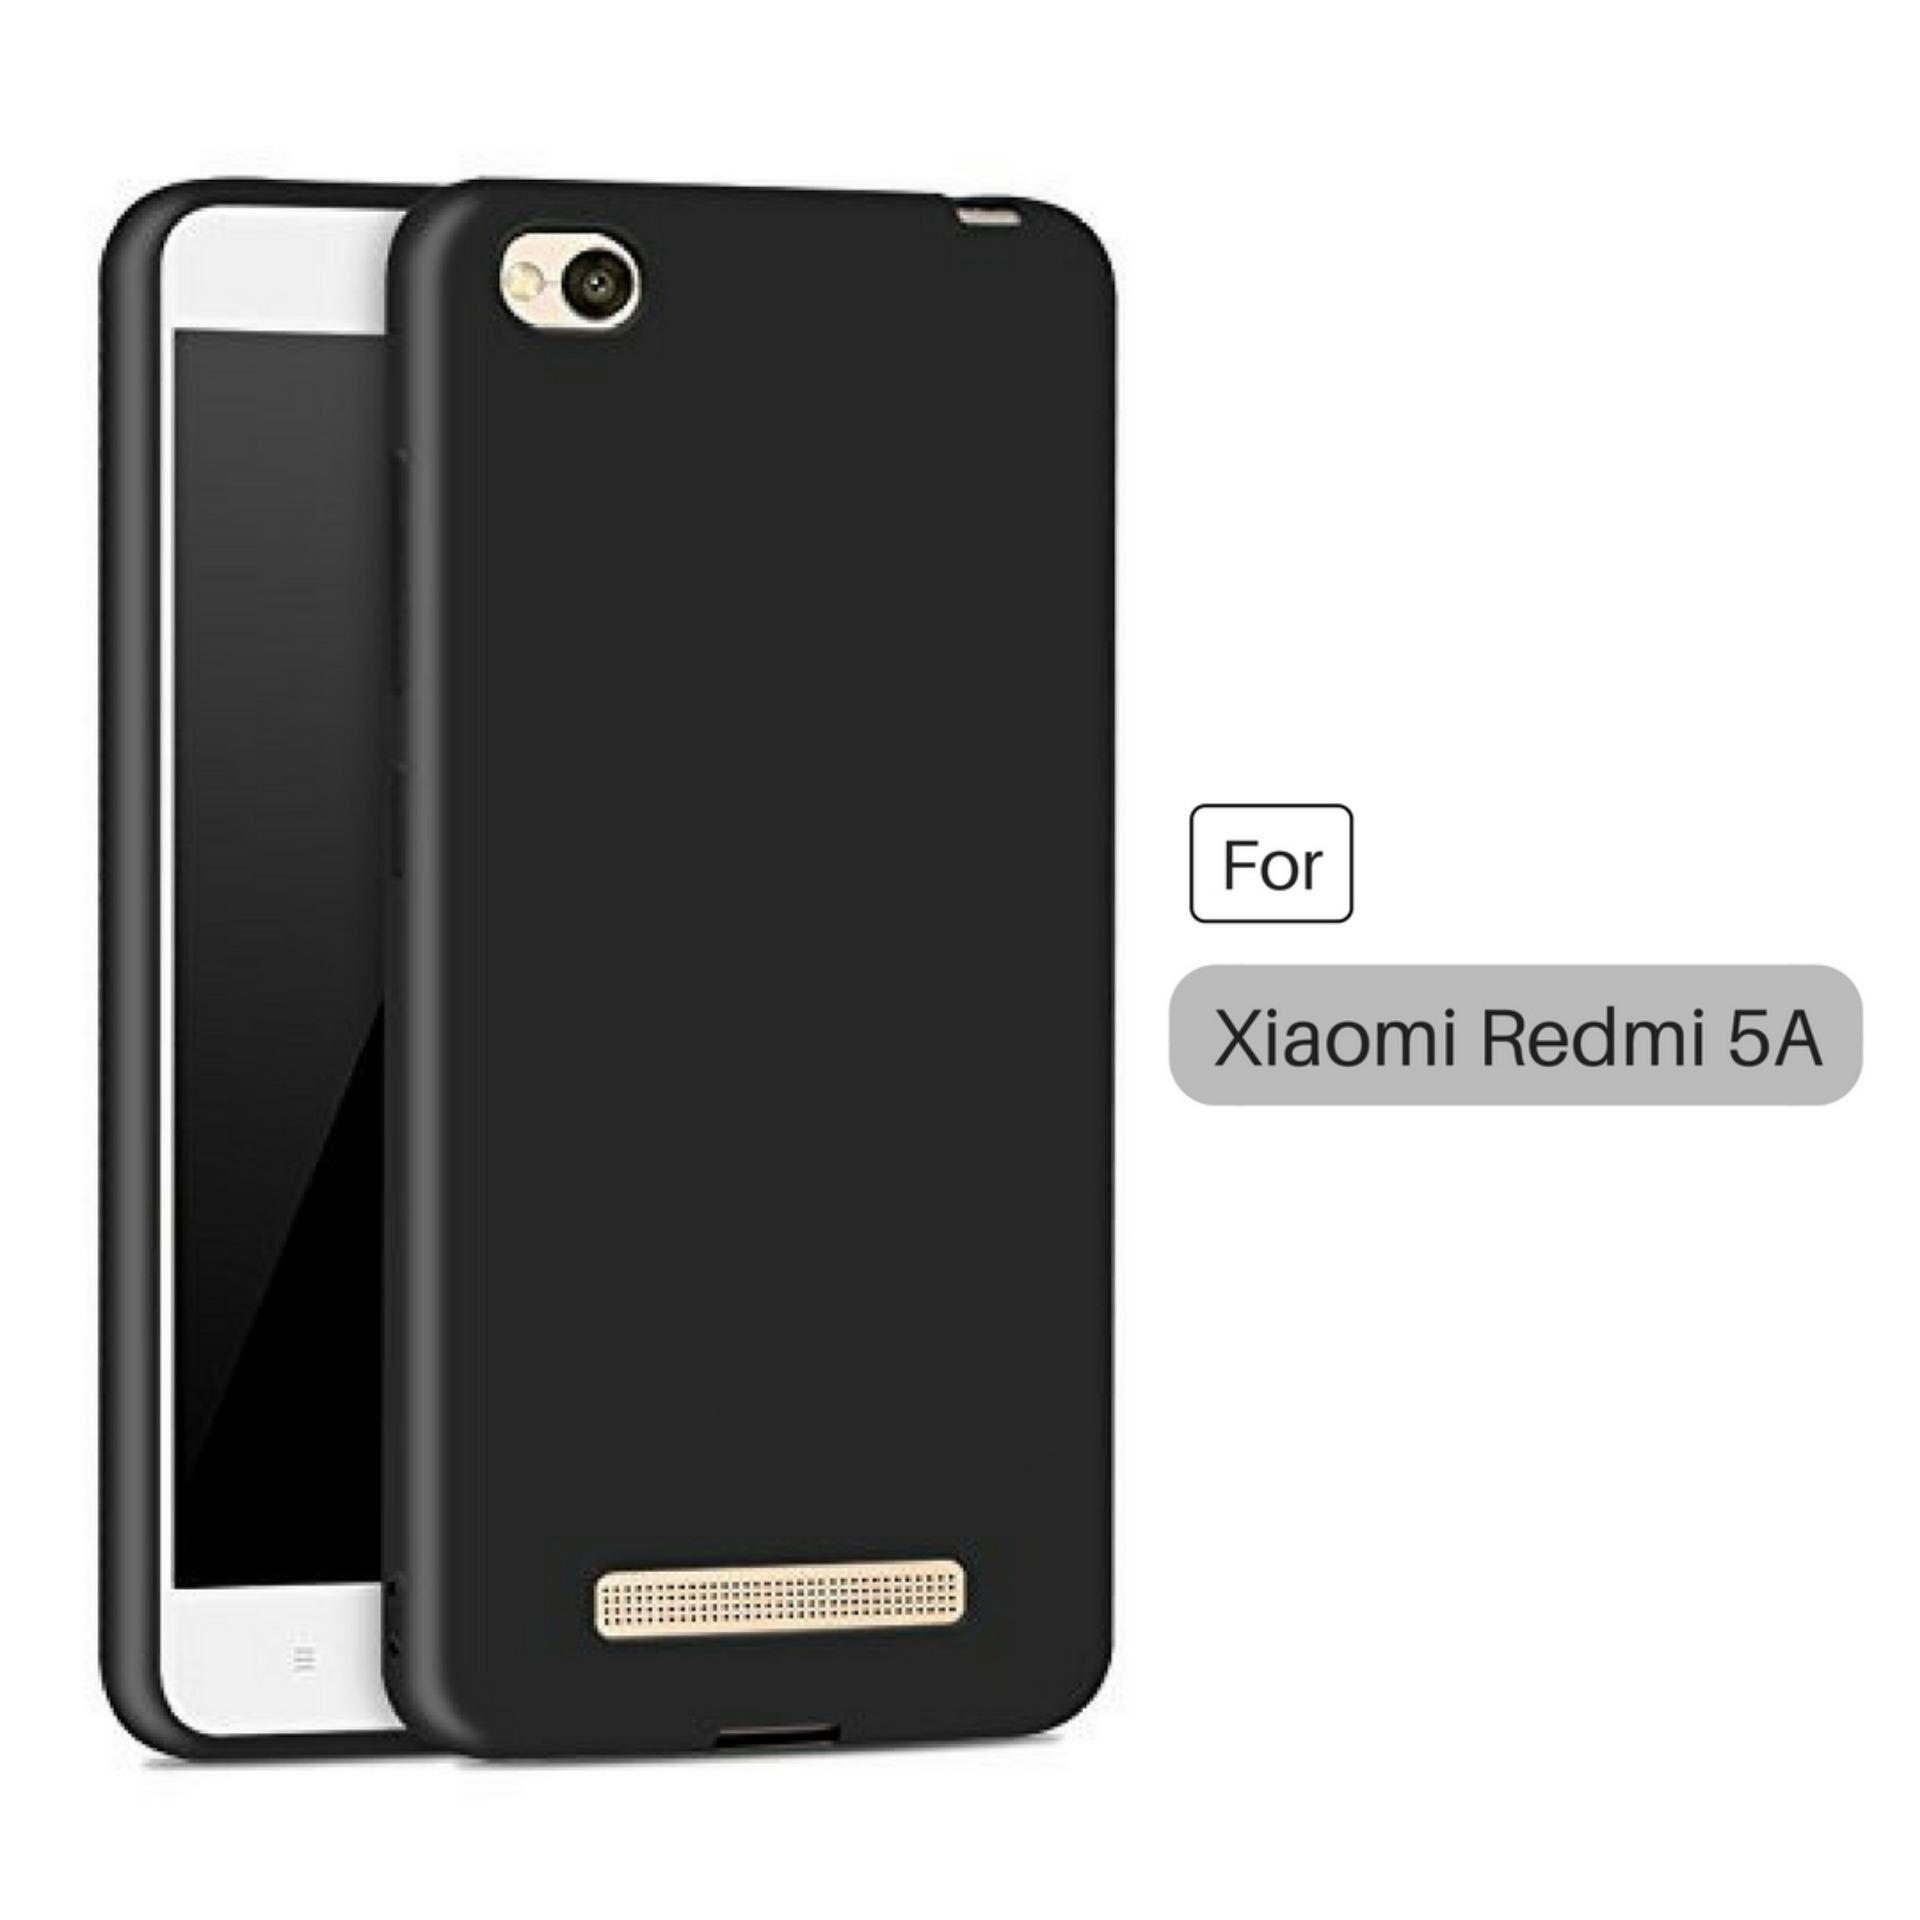 Buy Sell Cheapest Jam Tangan Renzana Best Quality Product Deals Smartphone Matte Case Superslim For Xiaomi Redmi 5a Black